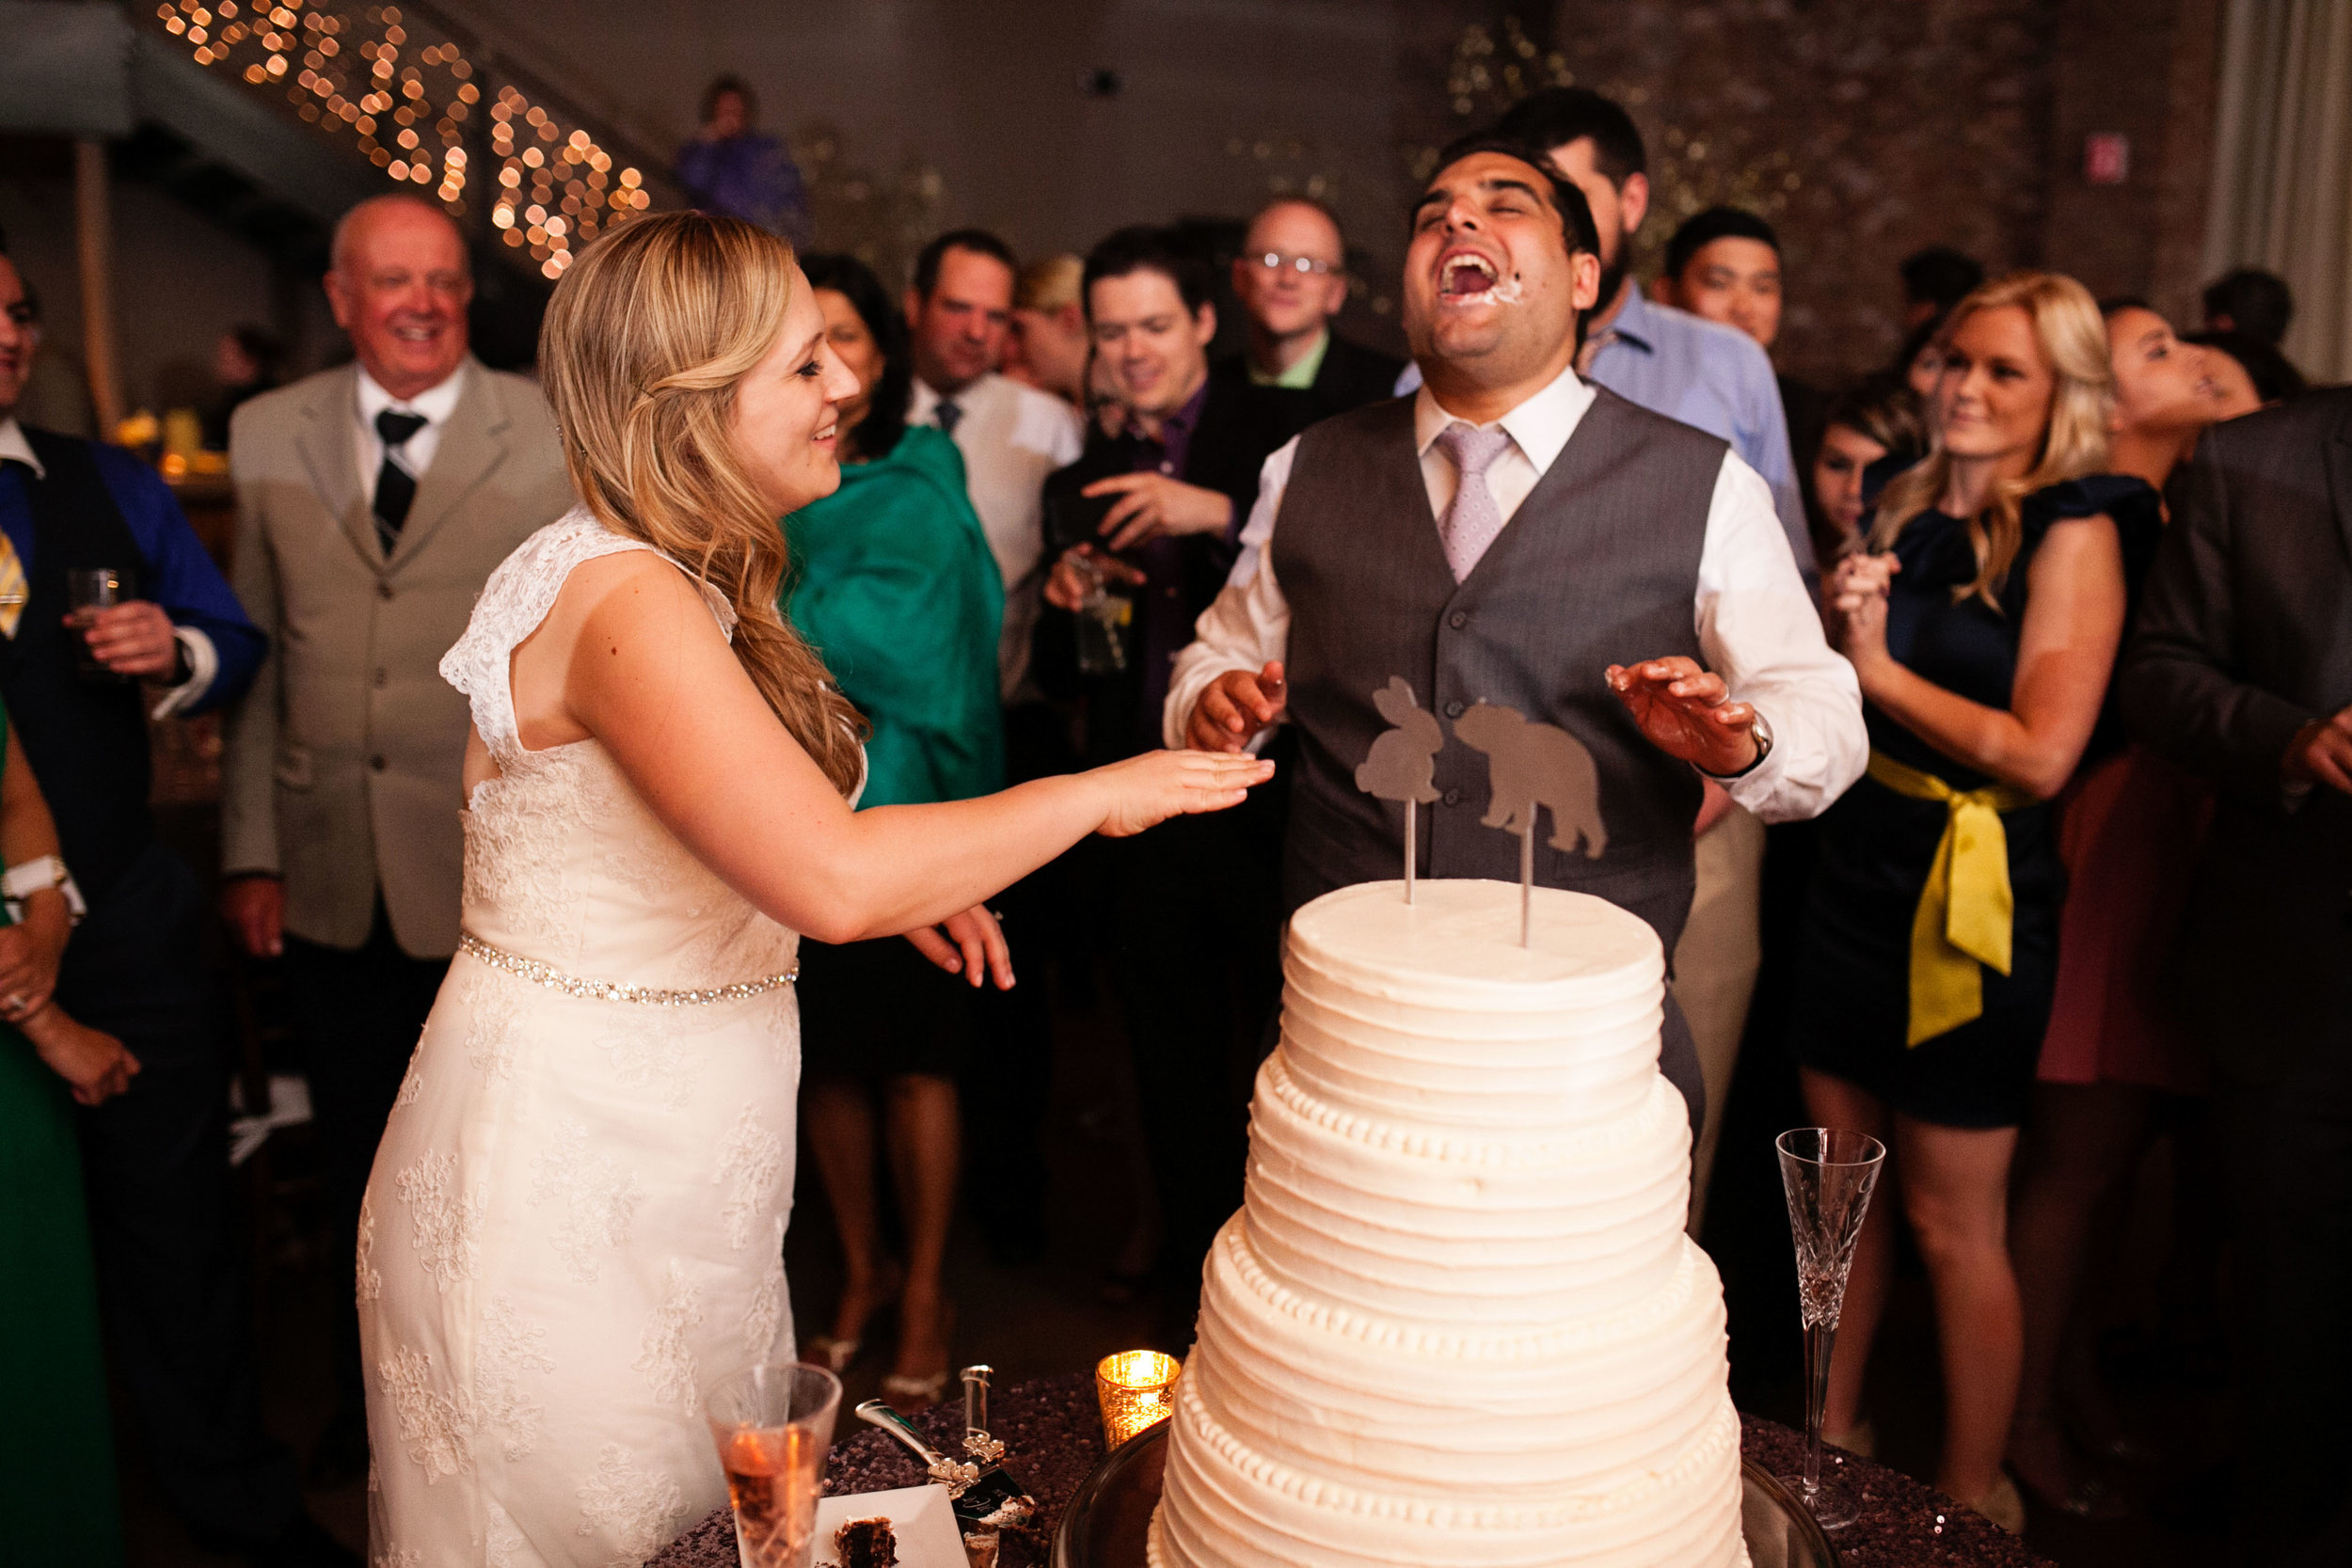 Adorable! Ashley Douglass Events wedding at the Roundhouse in Beacon, NY with Bruce Plotkin Photography.